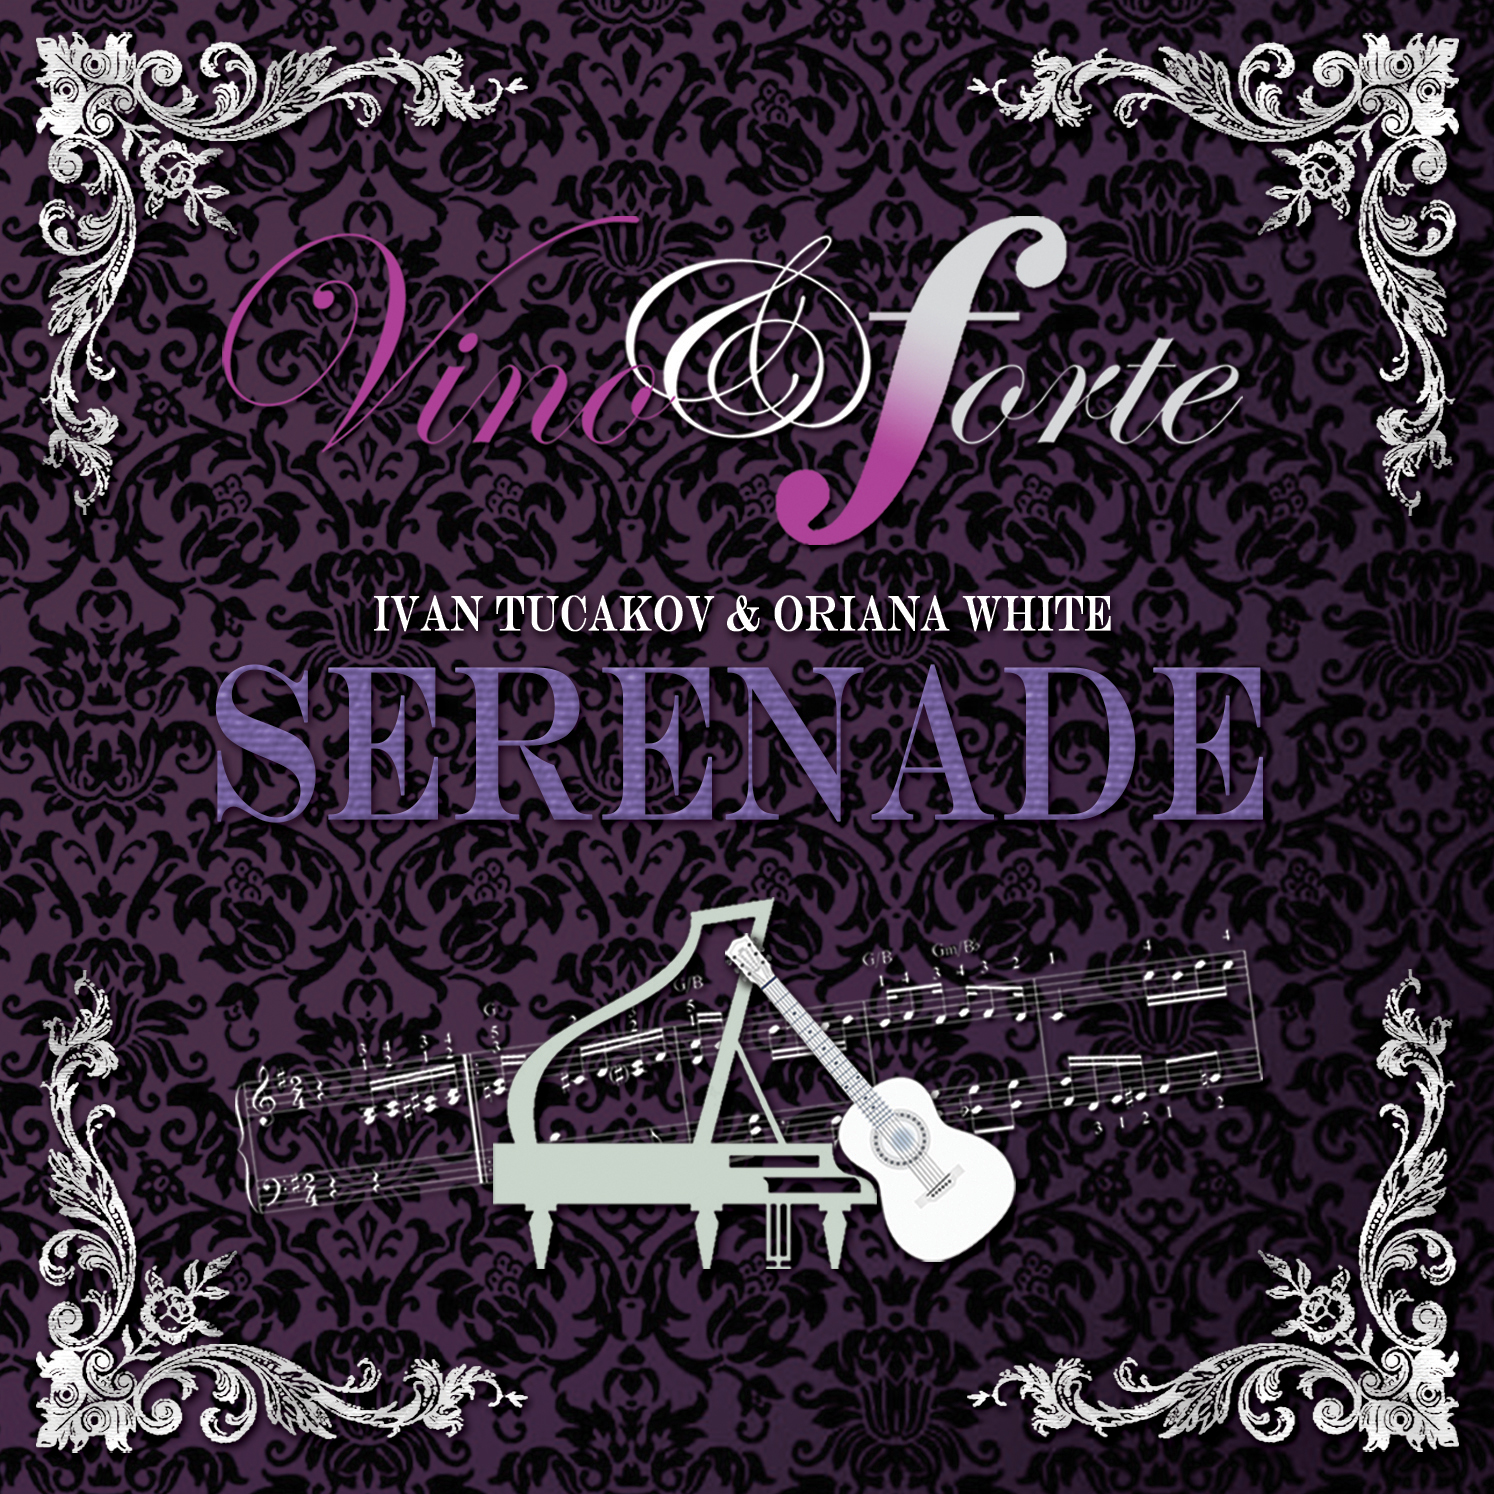 Vino & Forte - Serenade - Album Cover